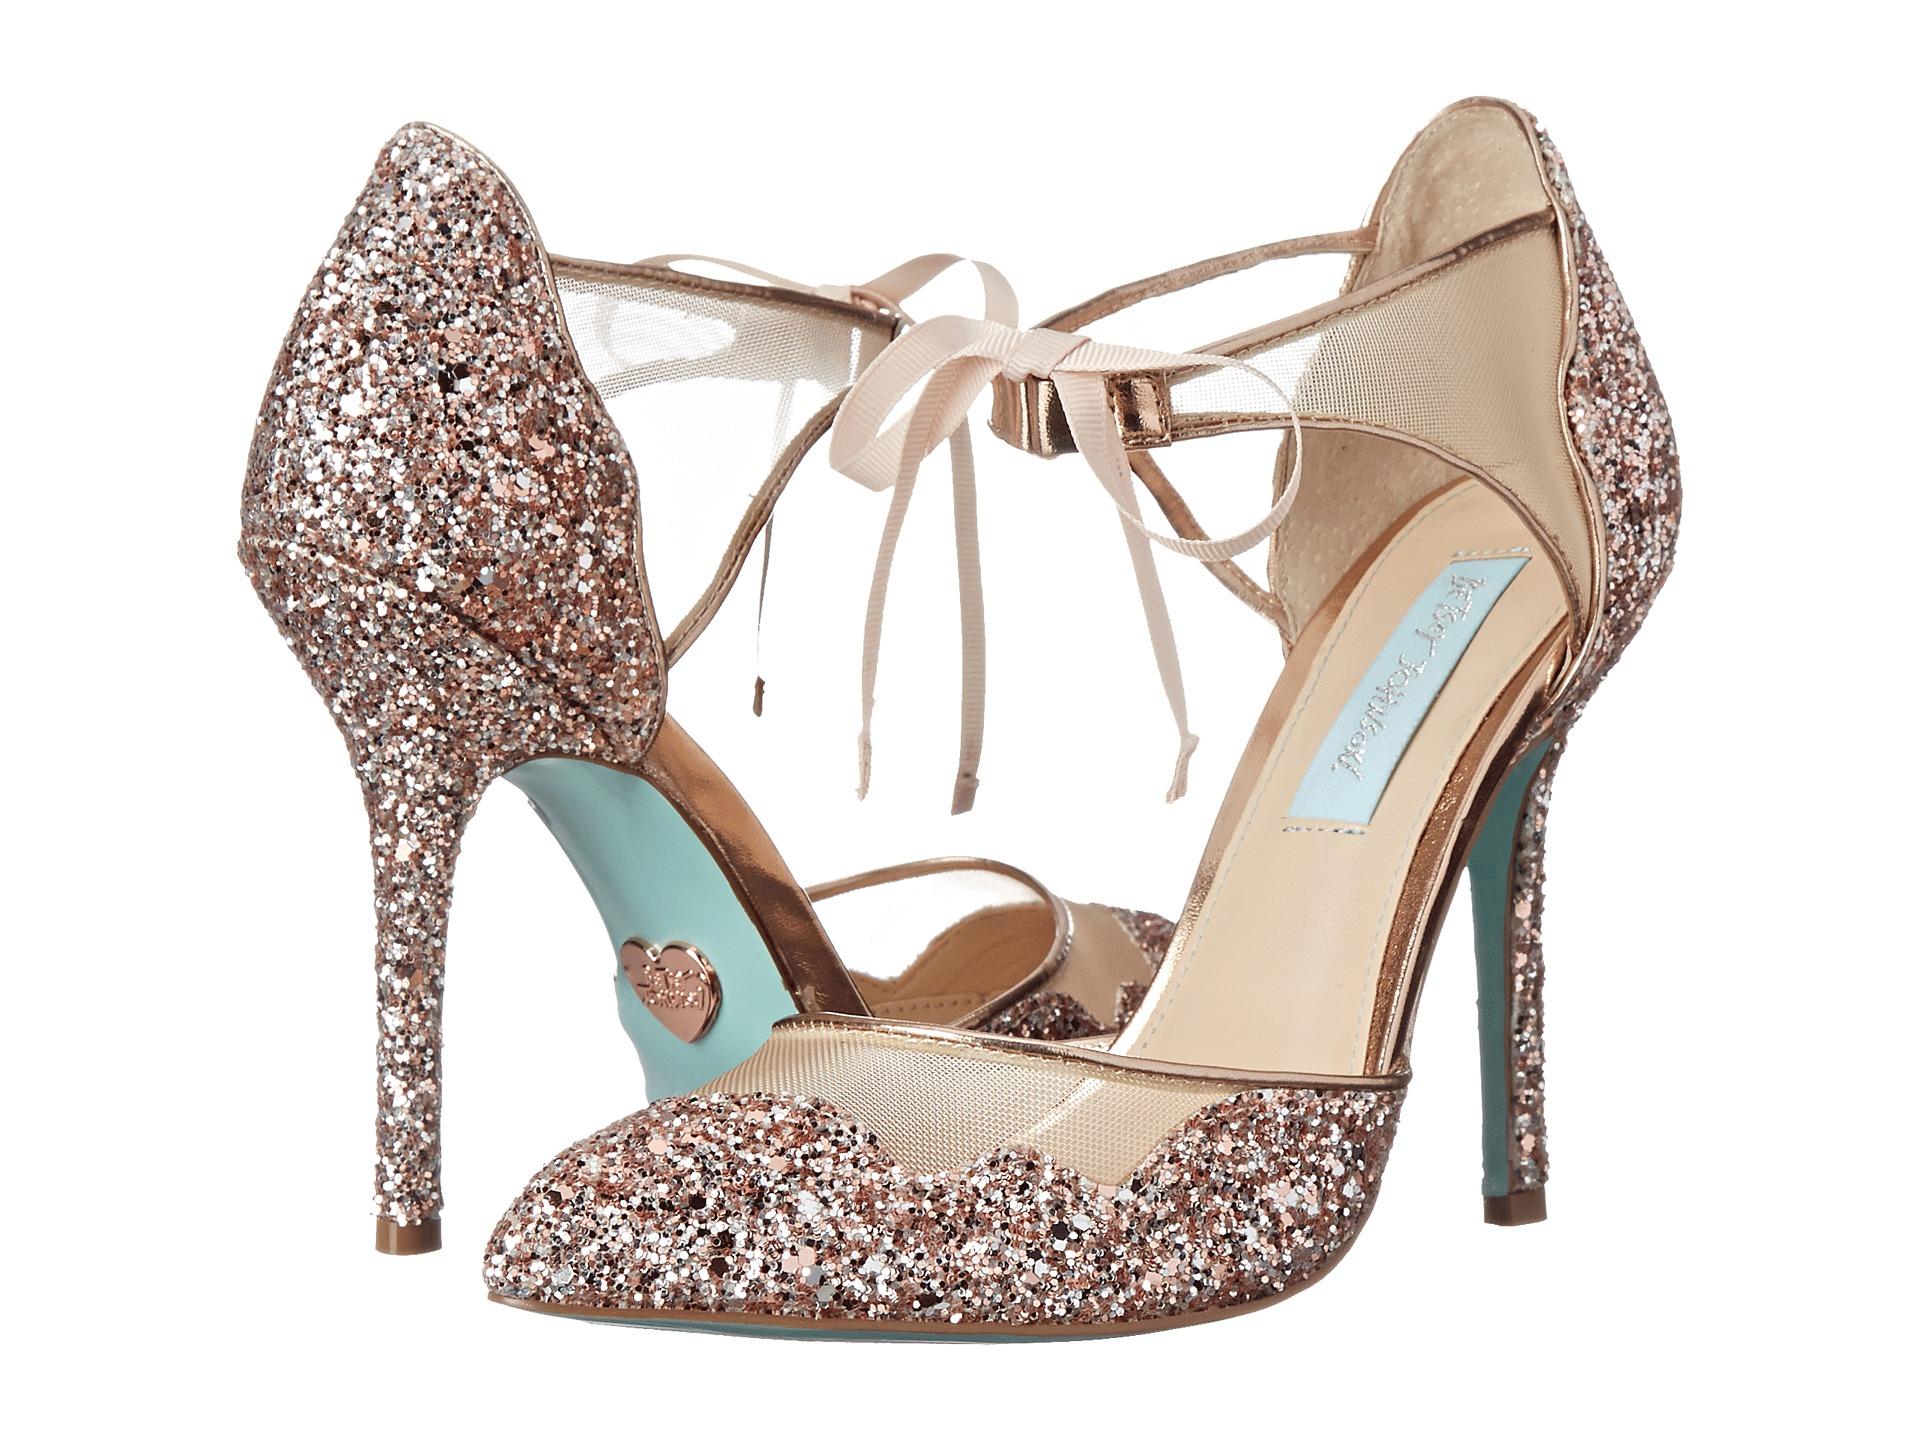 Betsey Johnson Shoes Reviews